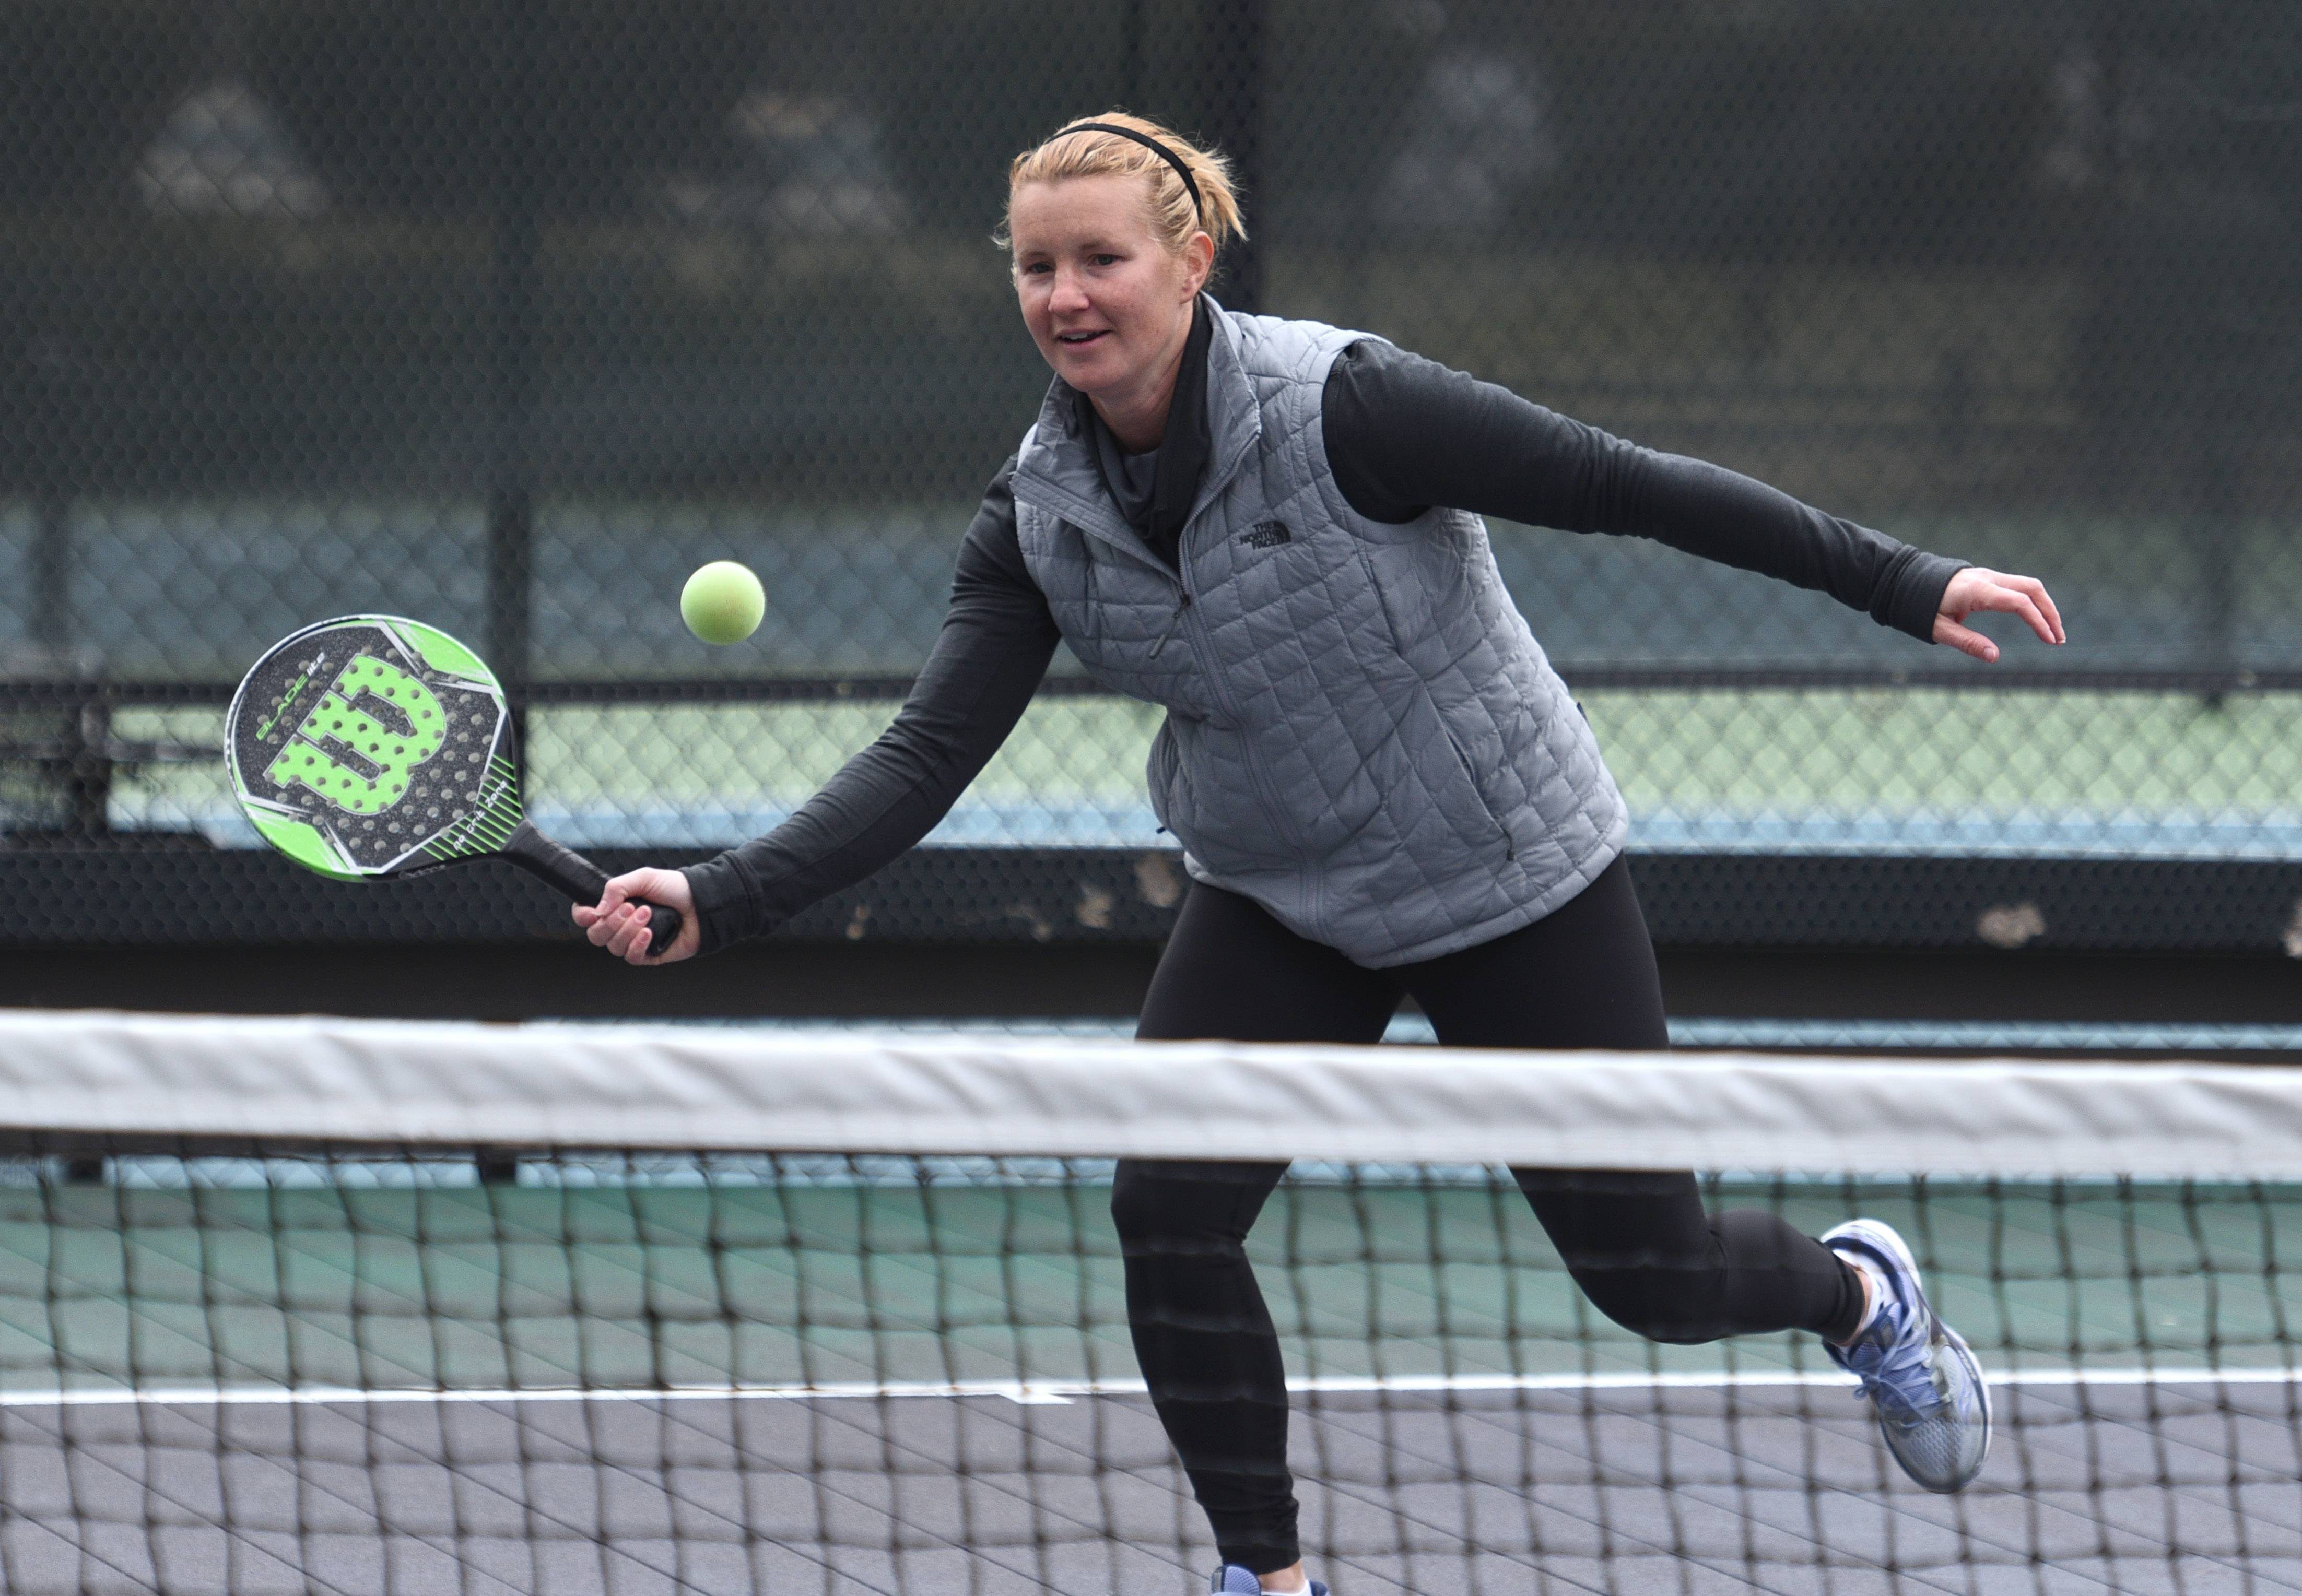 Platform tennis player Alison Morgan of Lake Bluff plays at the Birchwood Club in Highland Park.